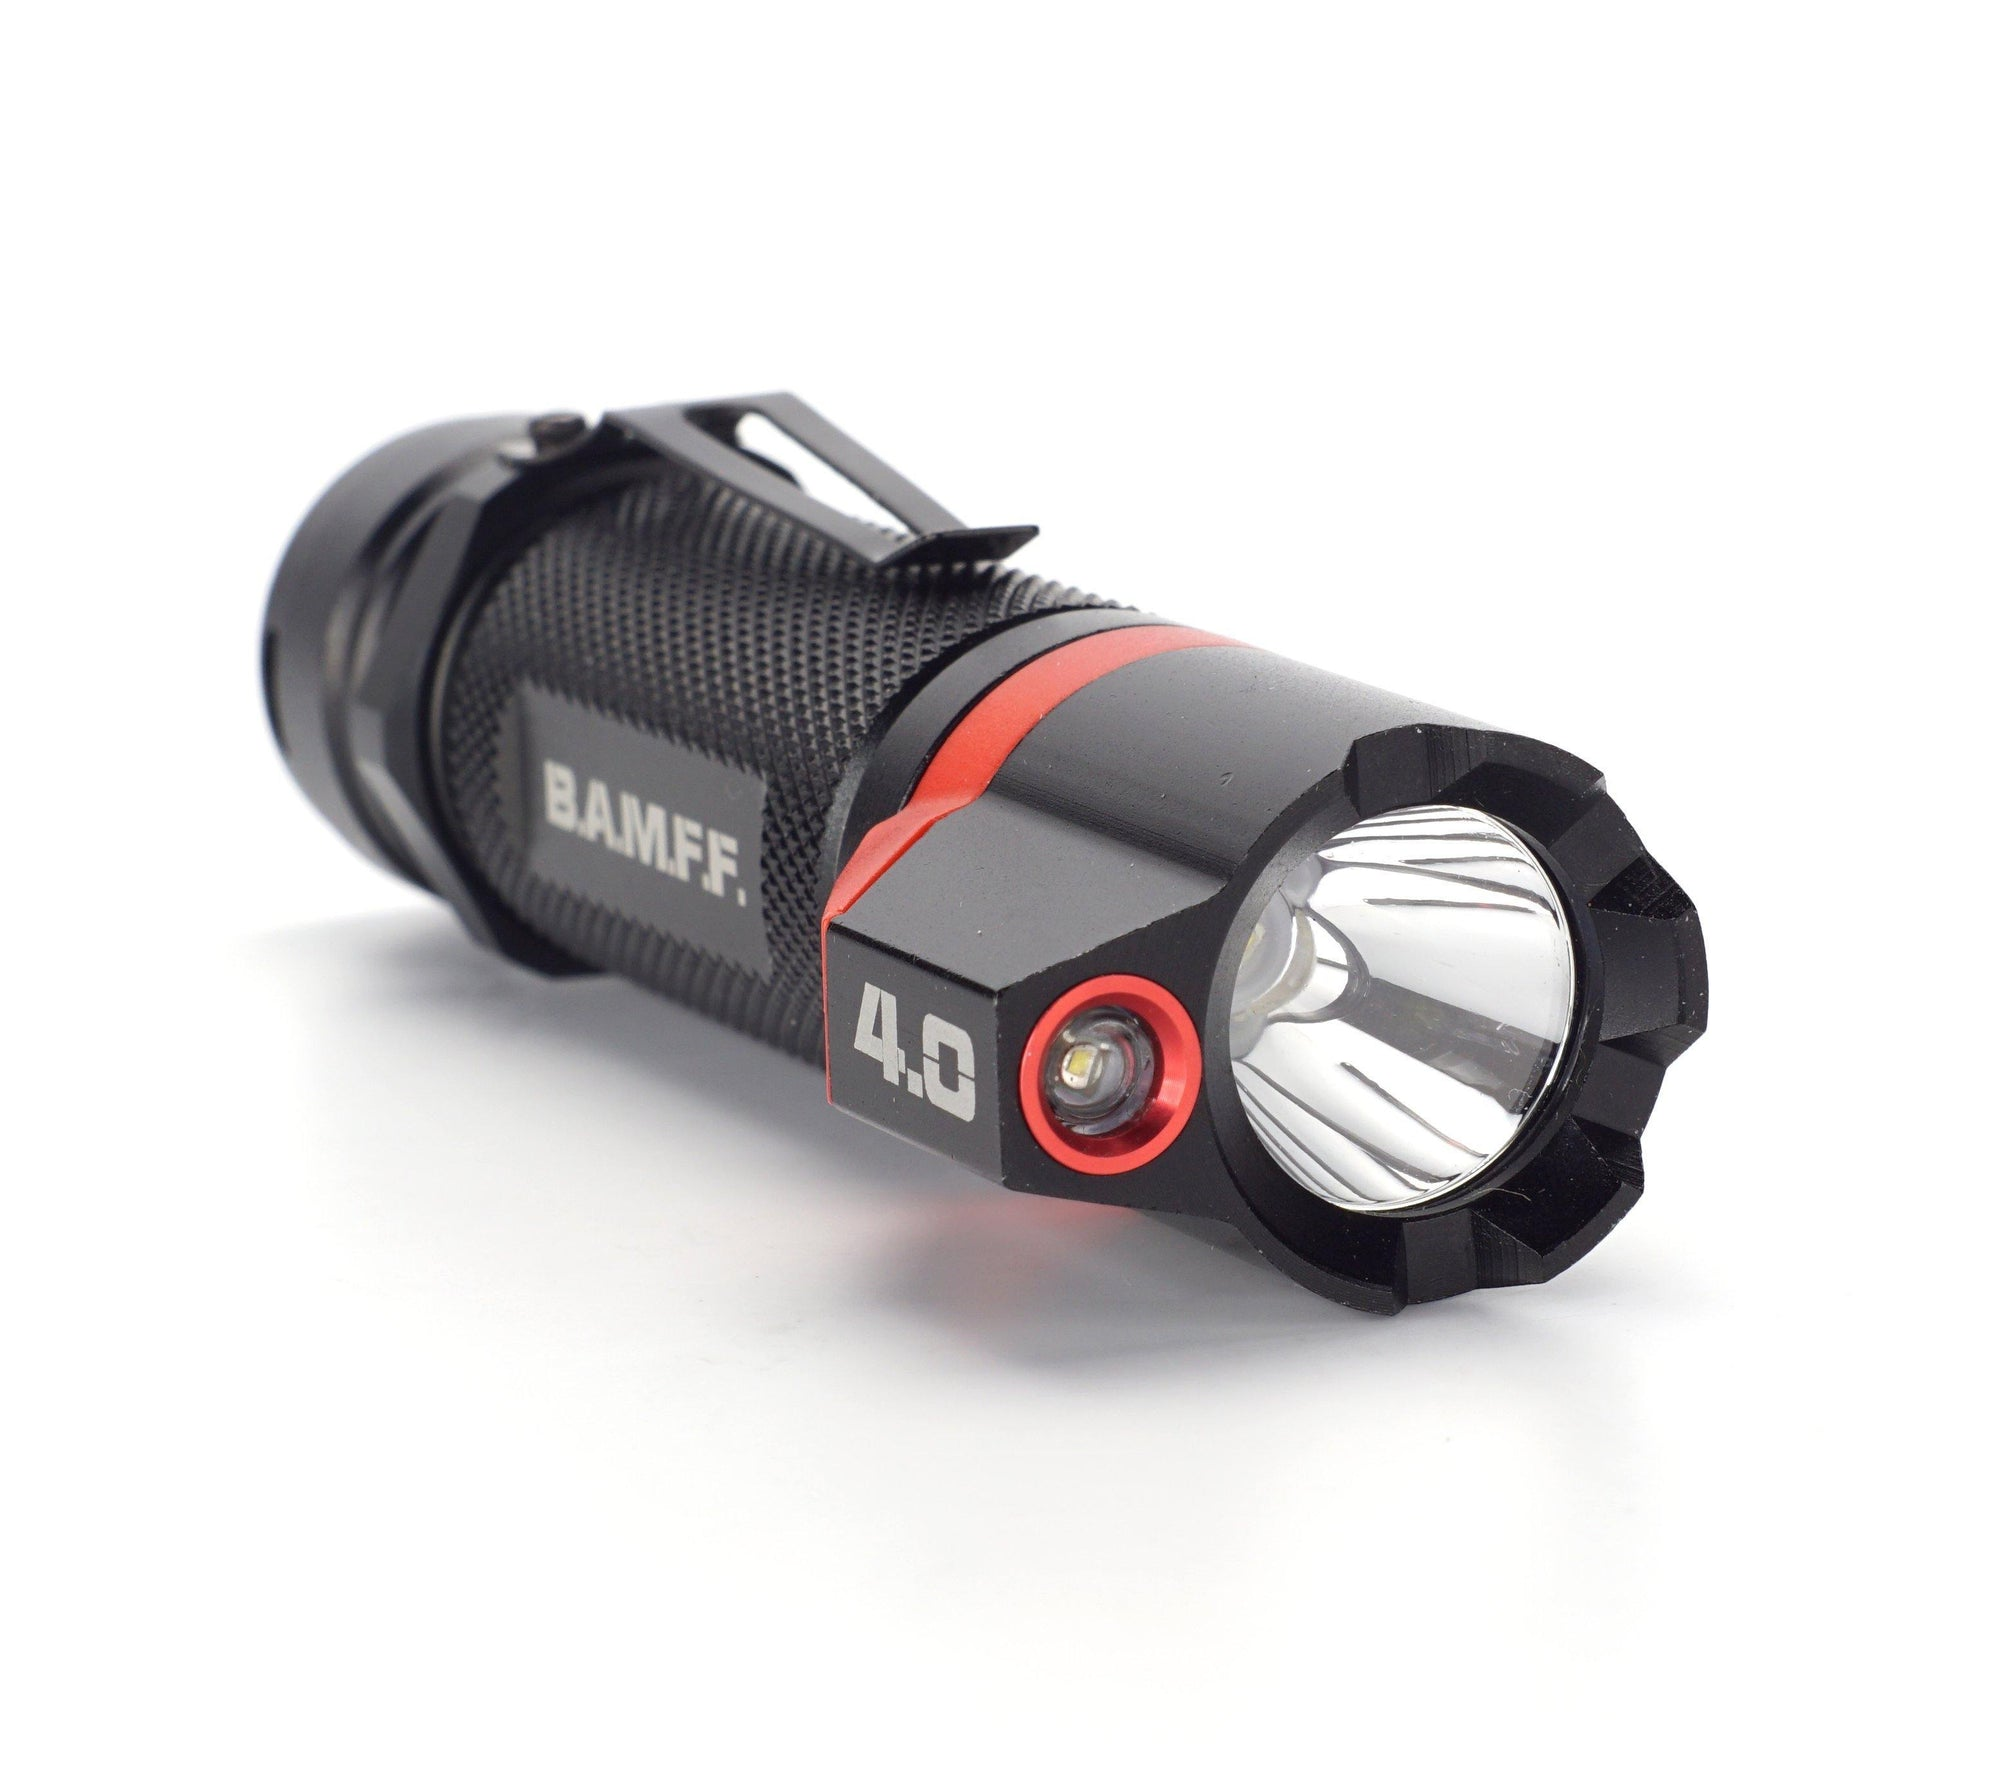 BAMFF 4.0 dual LED flashlight long distance and area lighting in one | STKR Concepts - striker flashlight